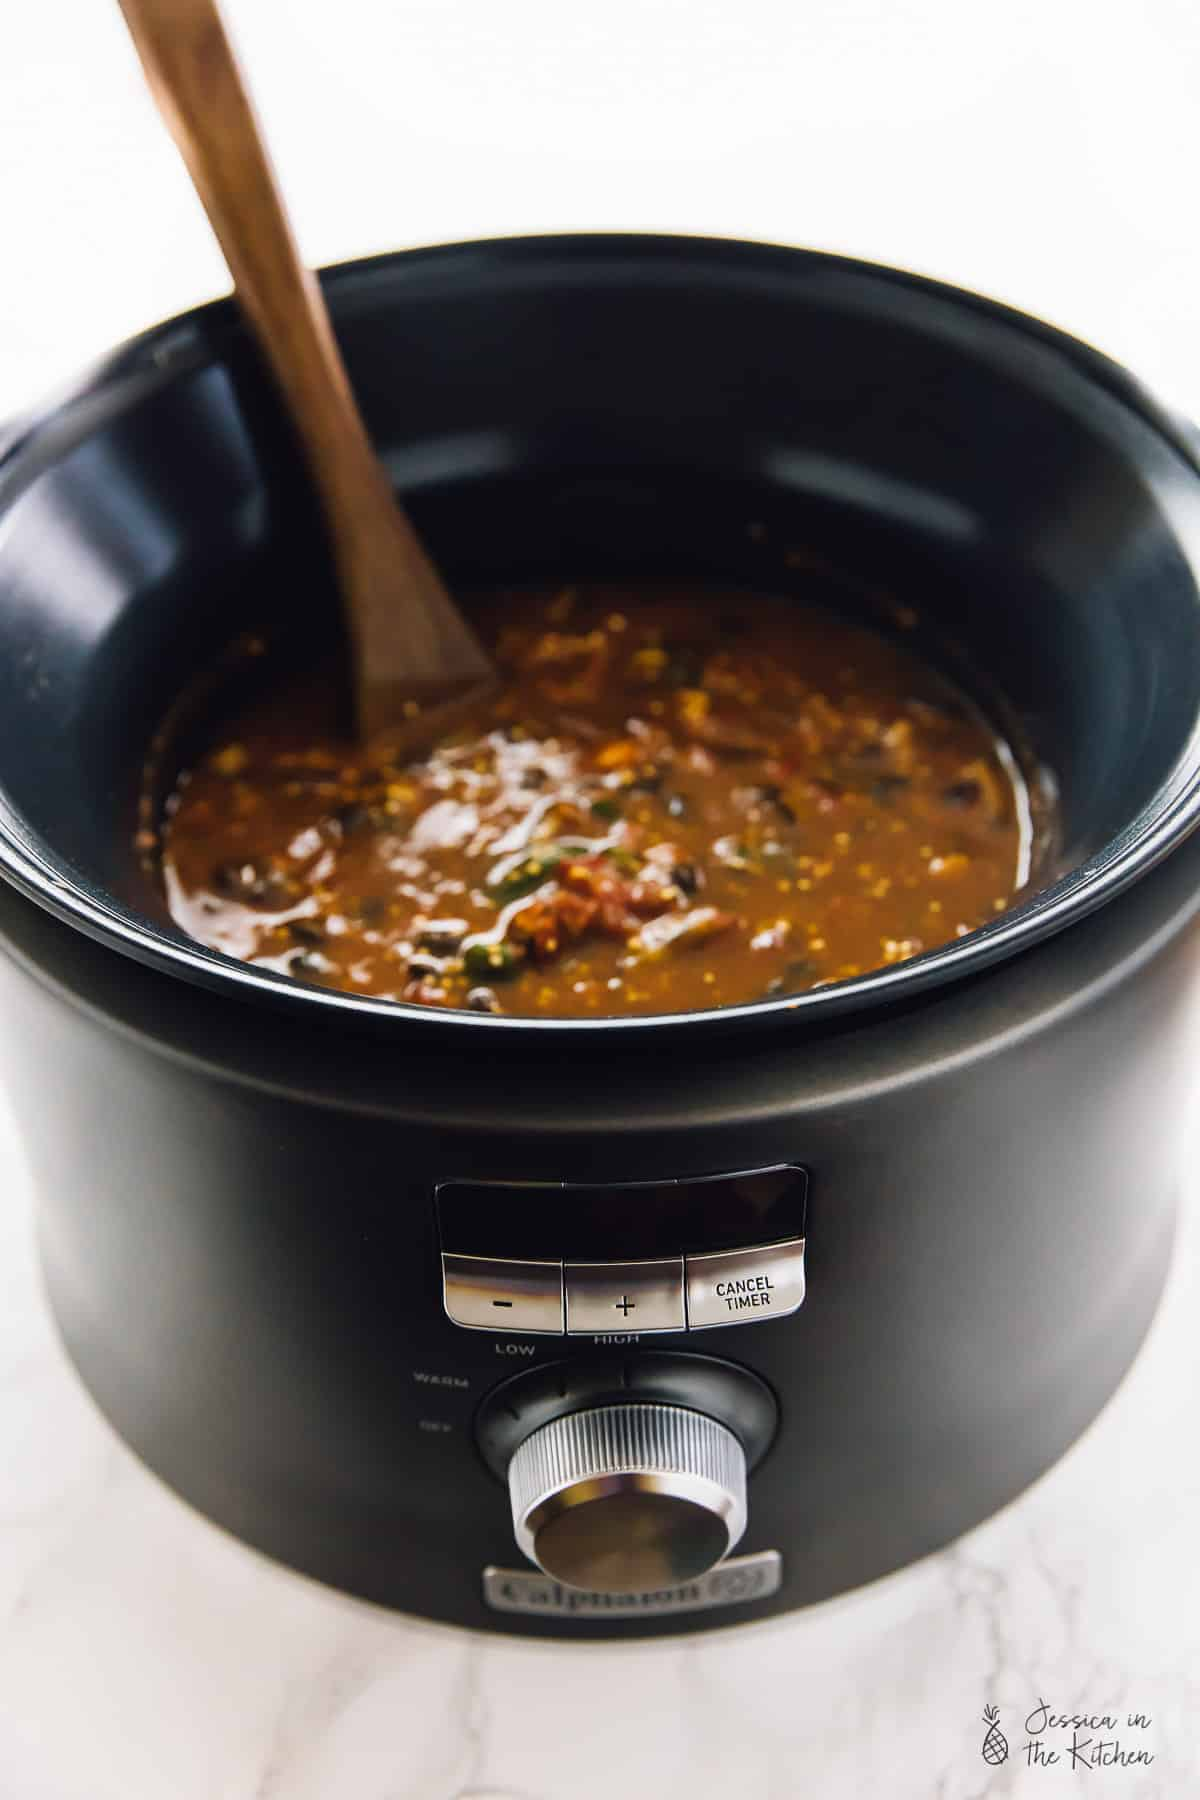 NEW POST! This Slow Cooker Pumpkin Quinoa Chili is warm, comforting and needs only 10 minutes of prep then right into the slow cooker! It results in a thick, filling and delicious chili! It's made in the brand new @Calphalon Digital Sauté Slow Cooker for a foolproof, seamless and flawless one-pot cooking experience! Via https://jessicainthekitchen.com #CalphalonAppliances #ad #vegan #slowcooker #chili